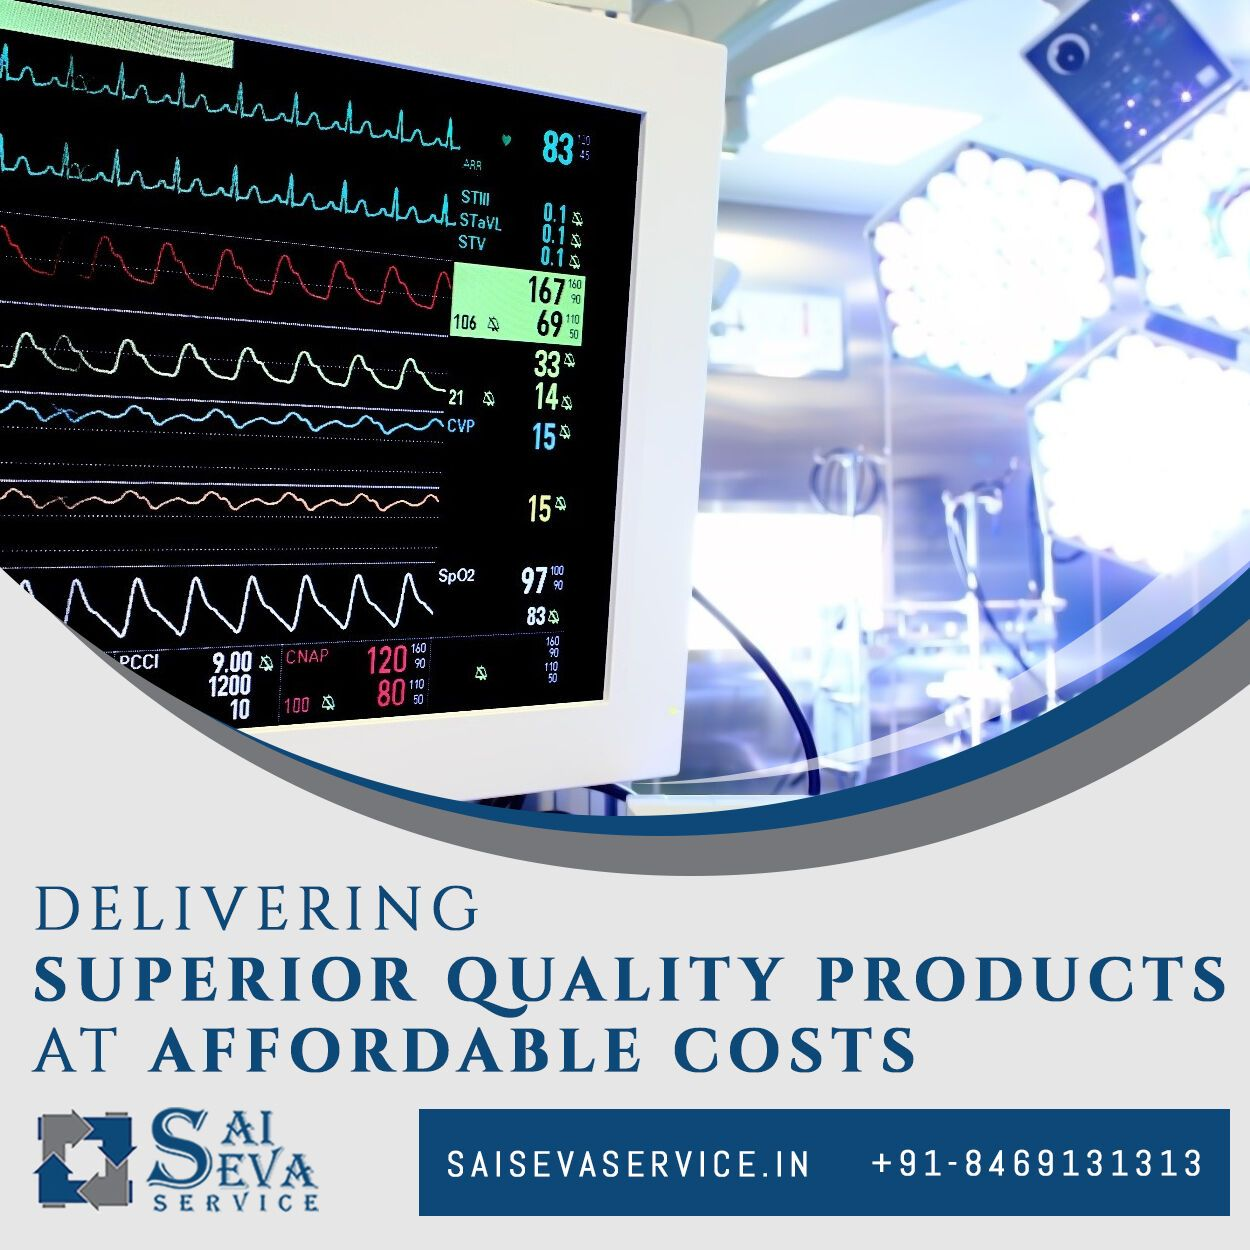 Sai Seva Service is one of the renowned manufacturers and